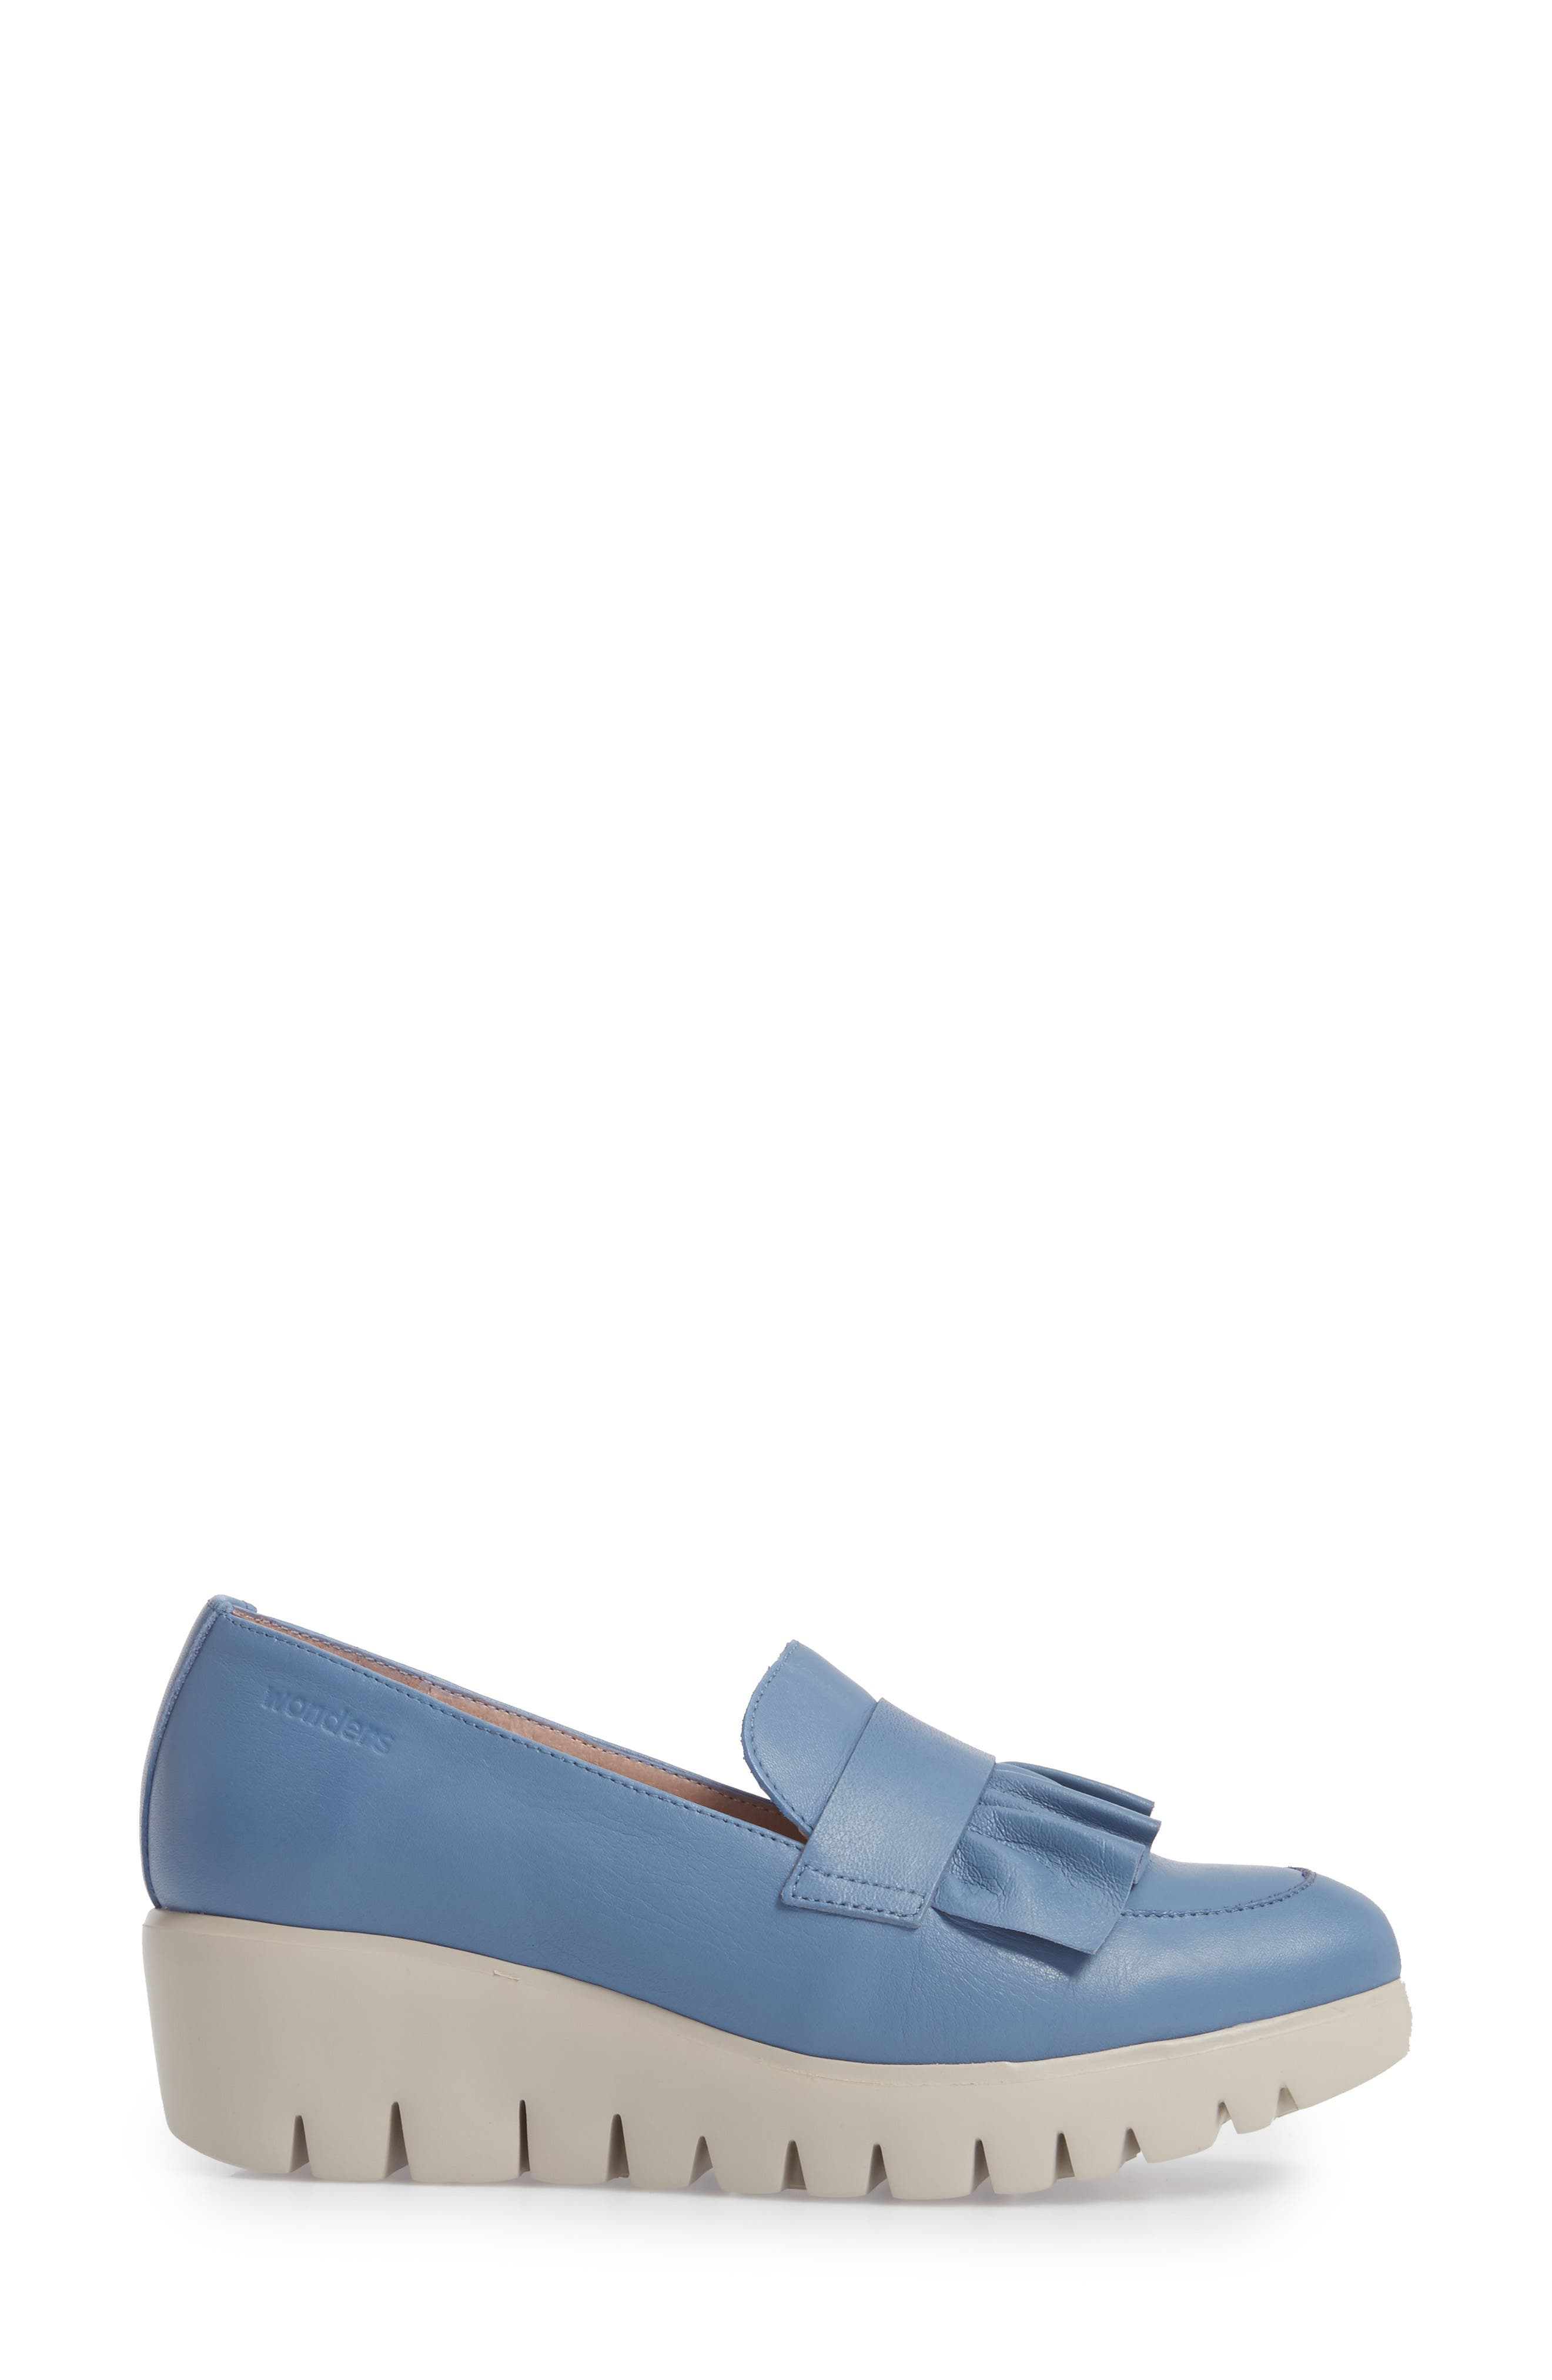 Loafer Wedge,                             Alternate thumbnail 3, color,                             Jeans Leather